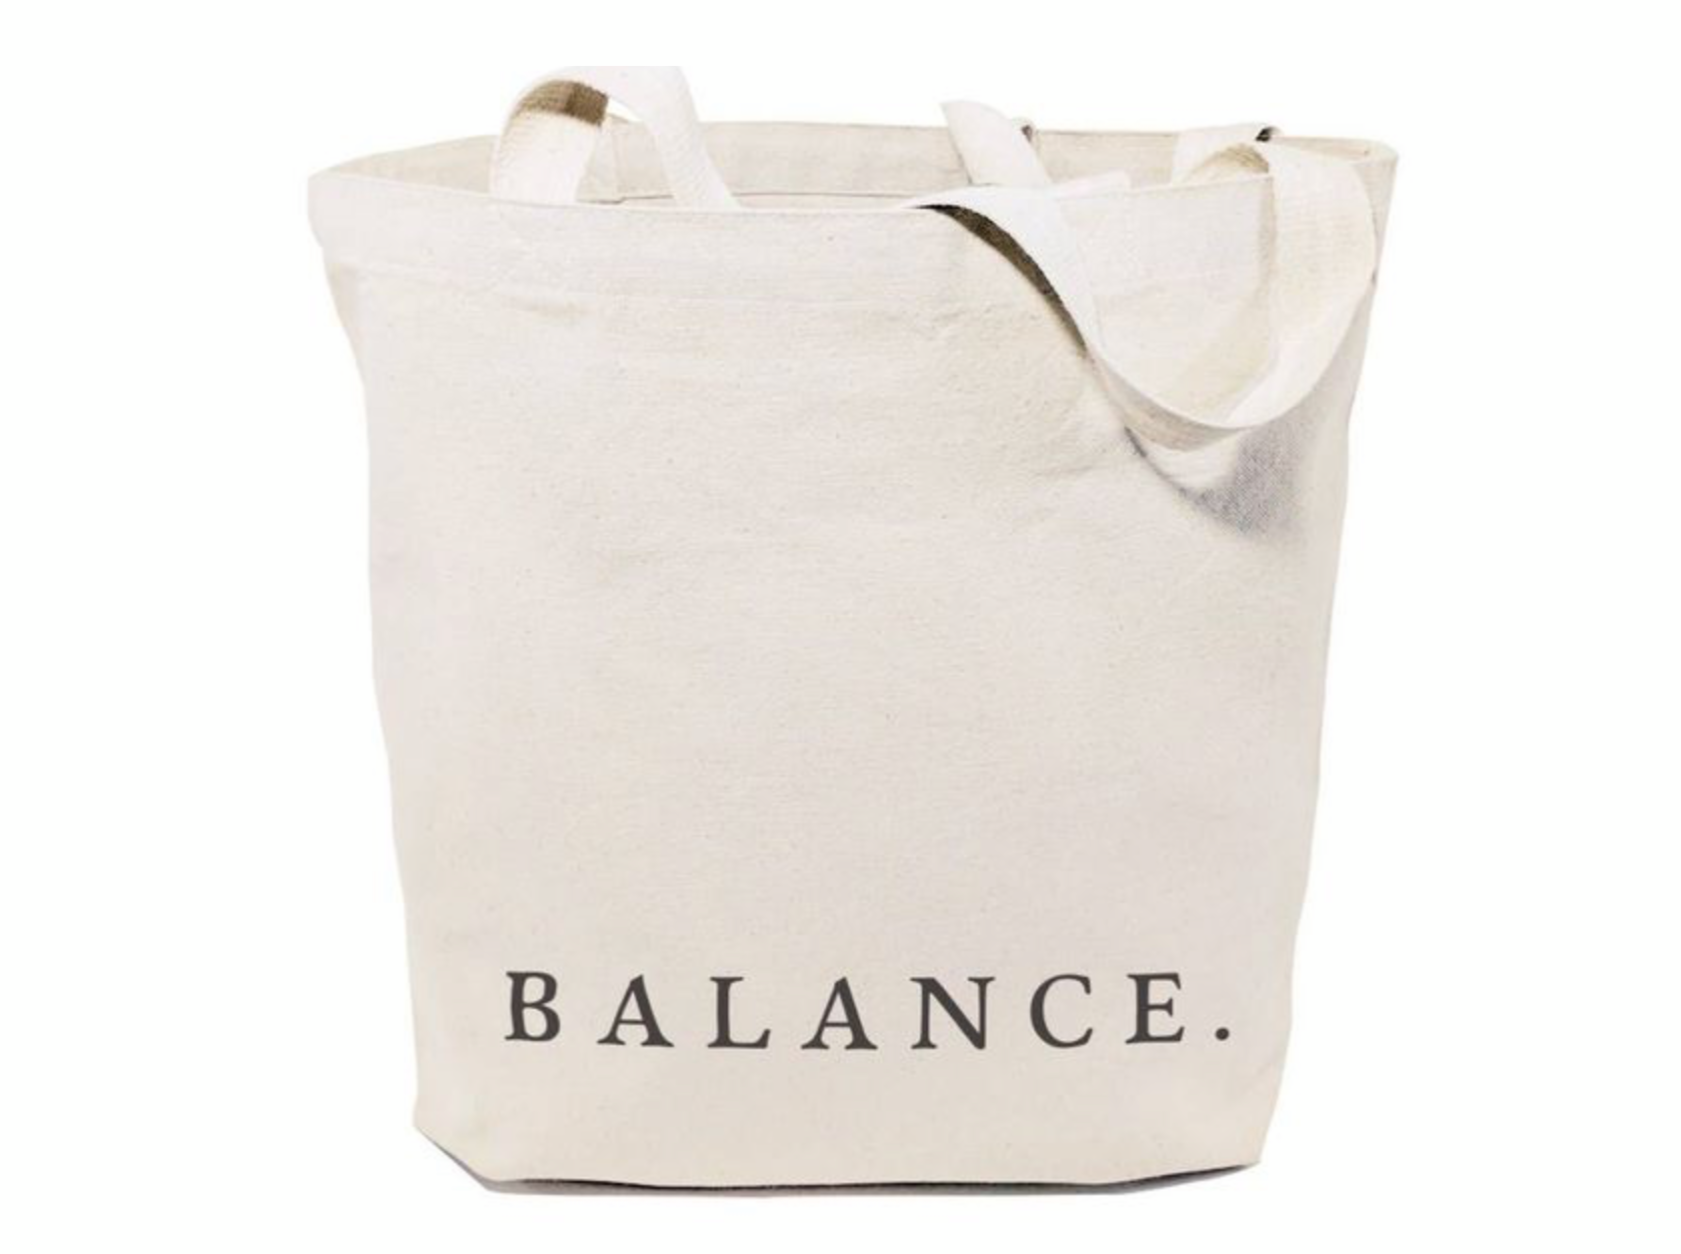 Balance Gym Tote and Handbag